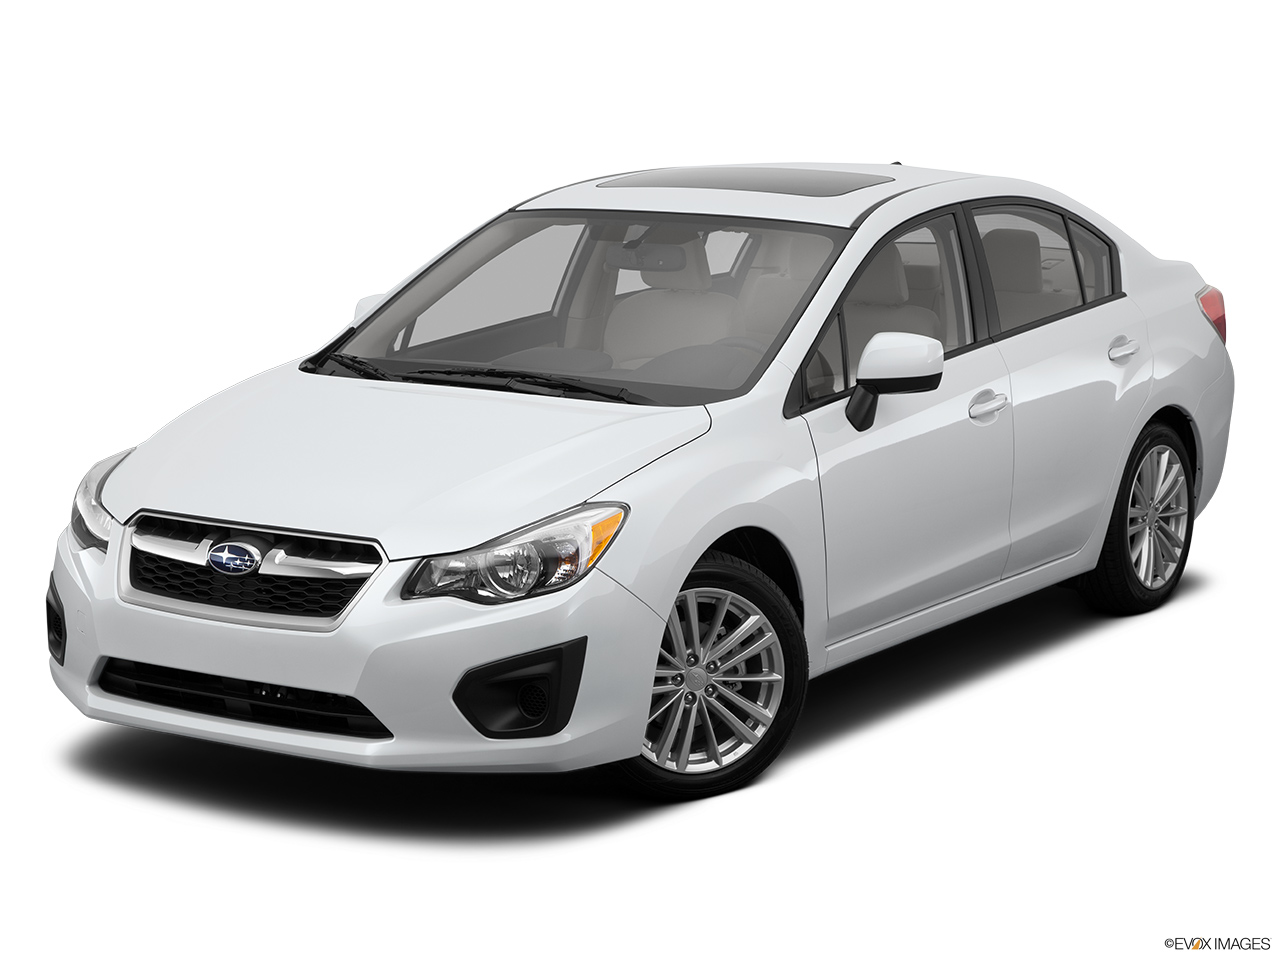 2014 subaru impreza sedan manual premium. Black Bedroom Furniture Sets. Home Design Ideas